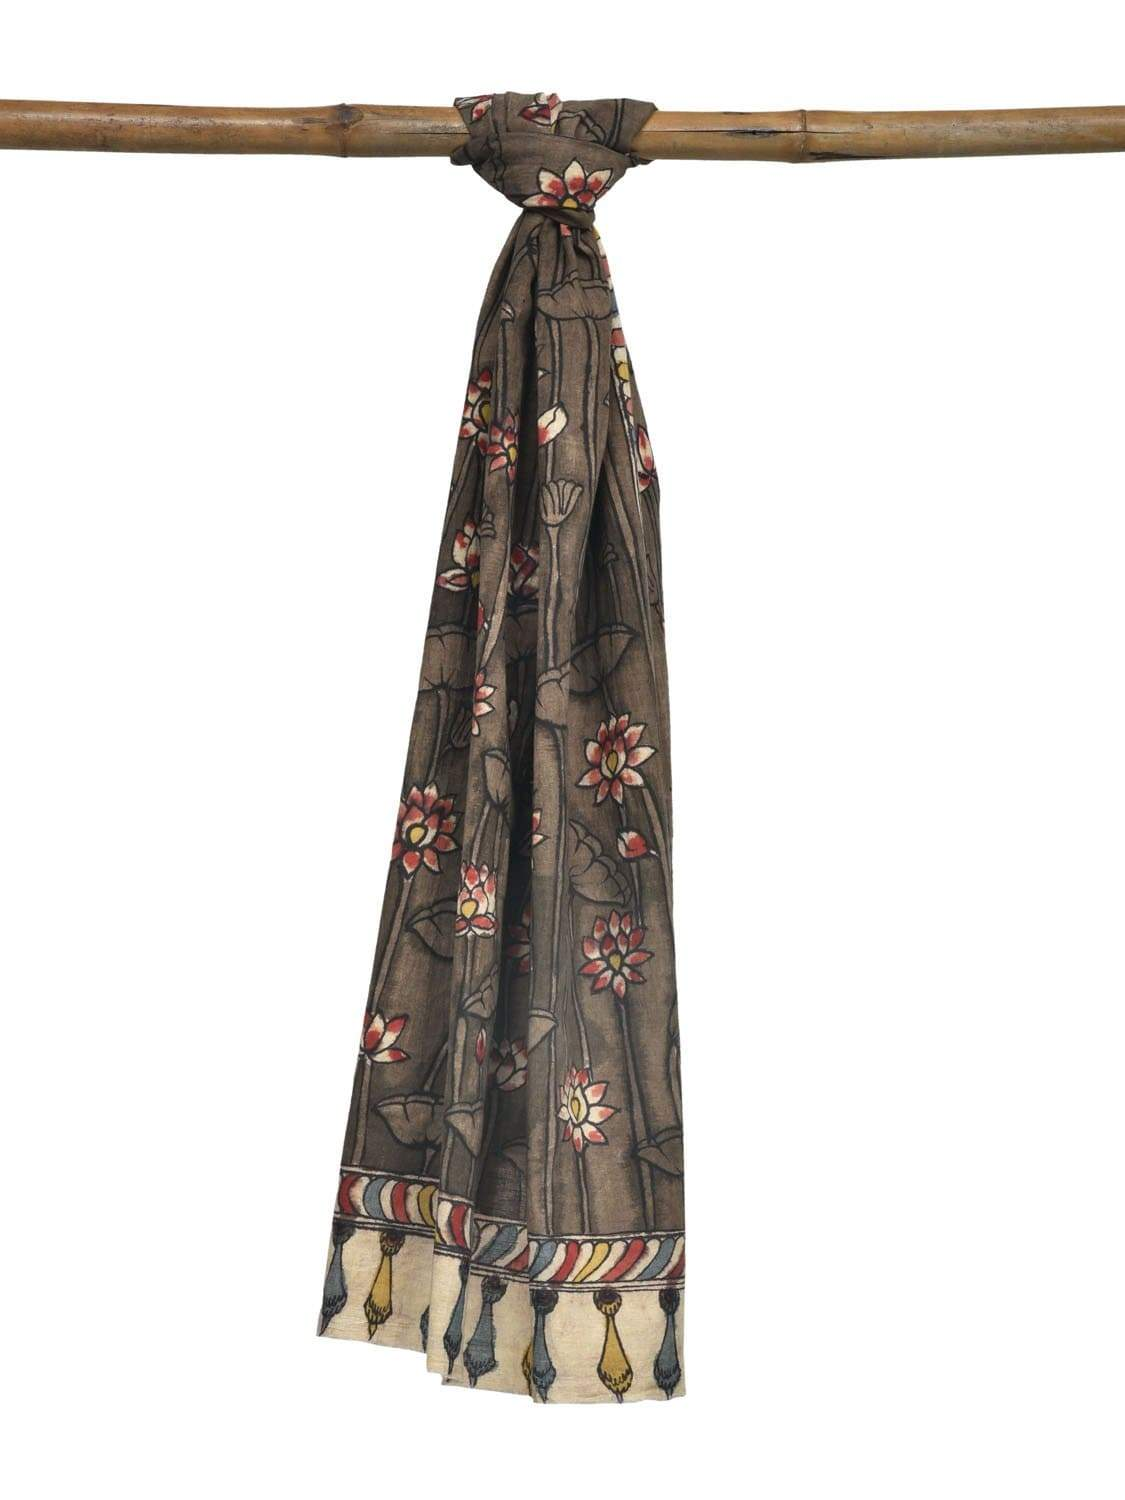 Khaki Kalamkari Hand Painted Cotton Handloom Stole with Lotus Flowers Design ds1918